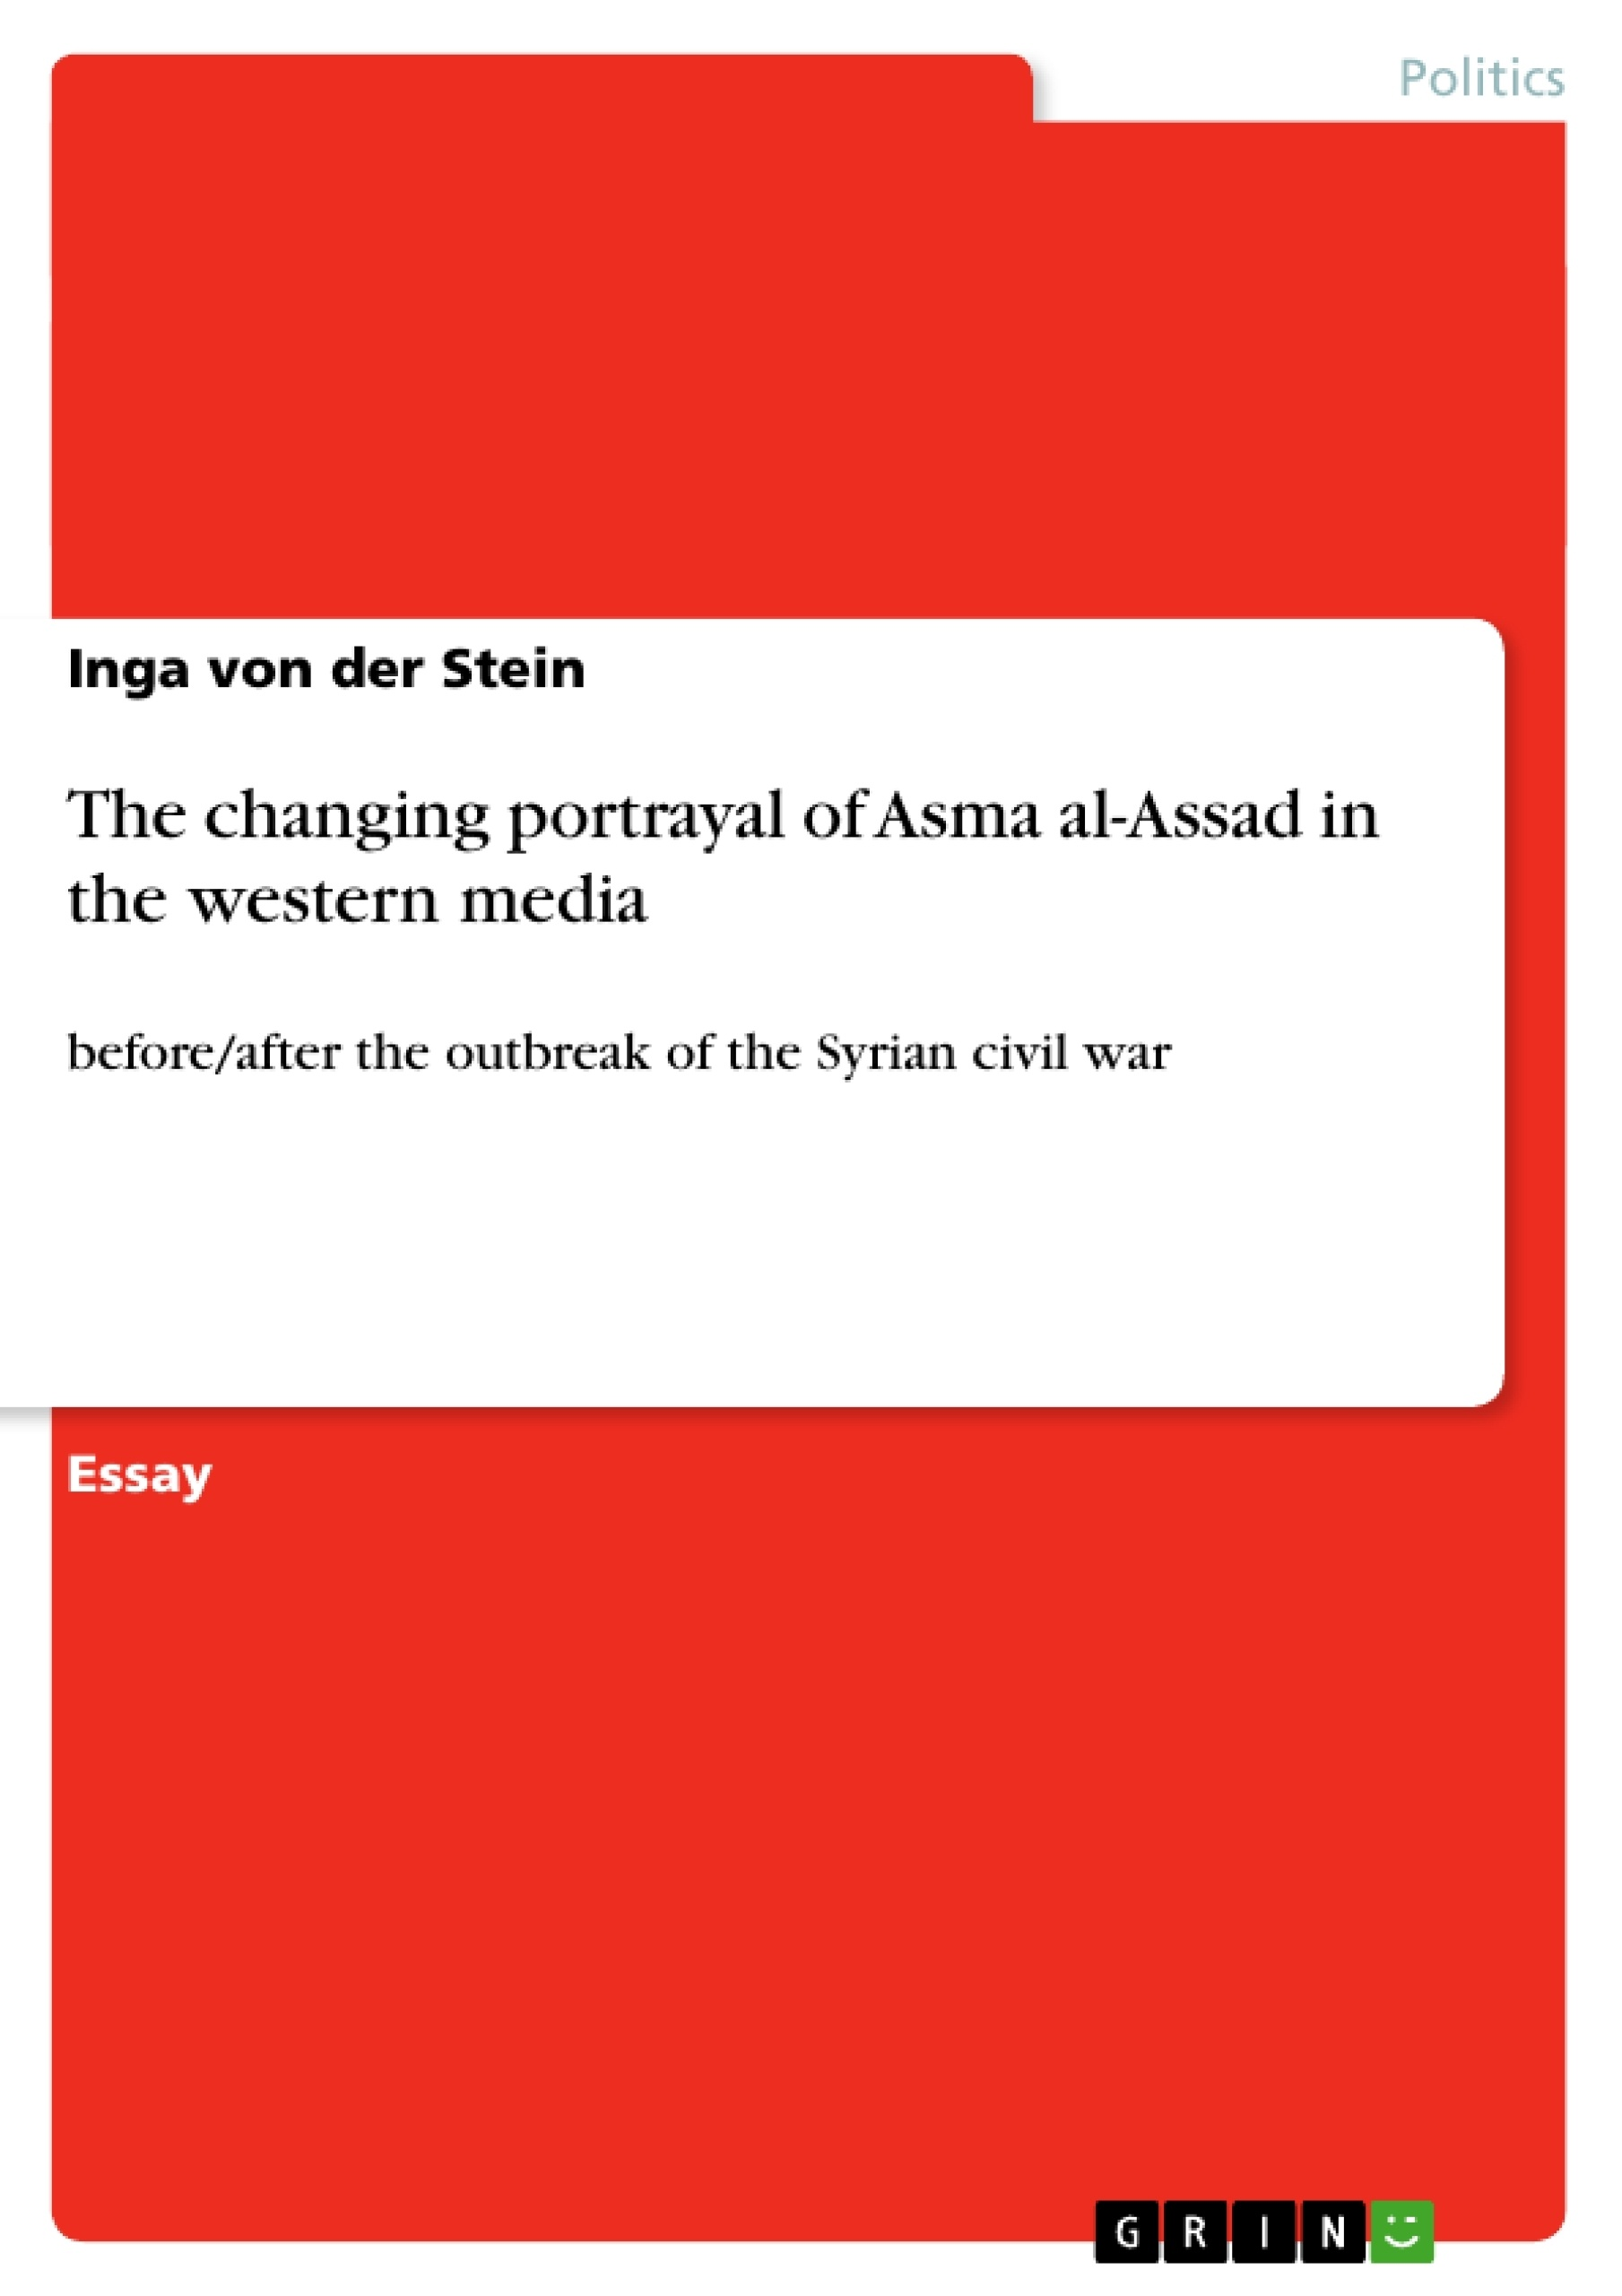 Title: The changing portrayal of Asma al-Assad in the western media